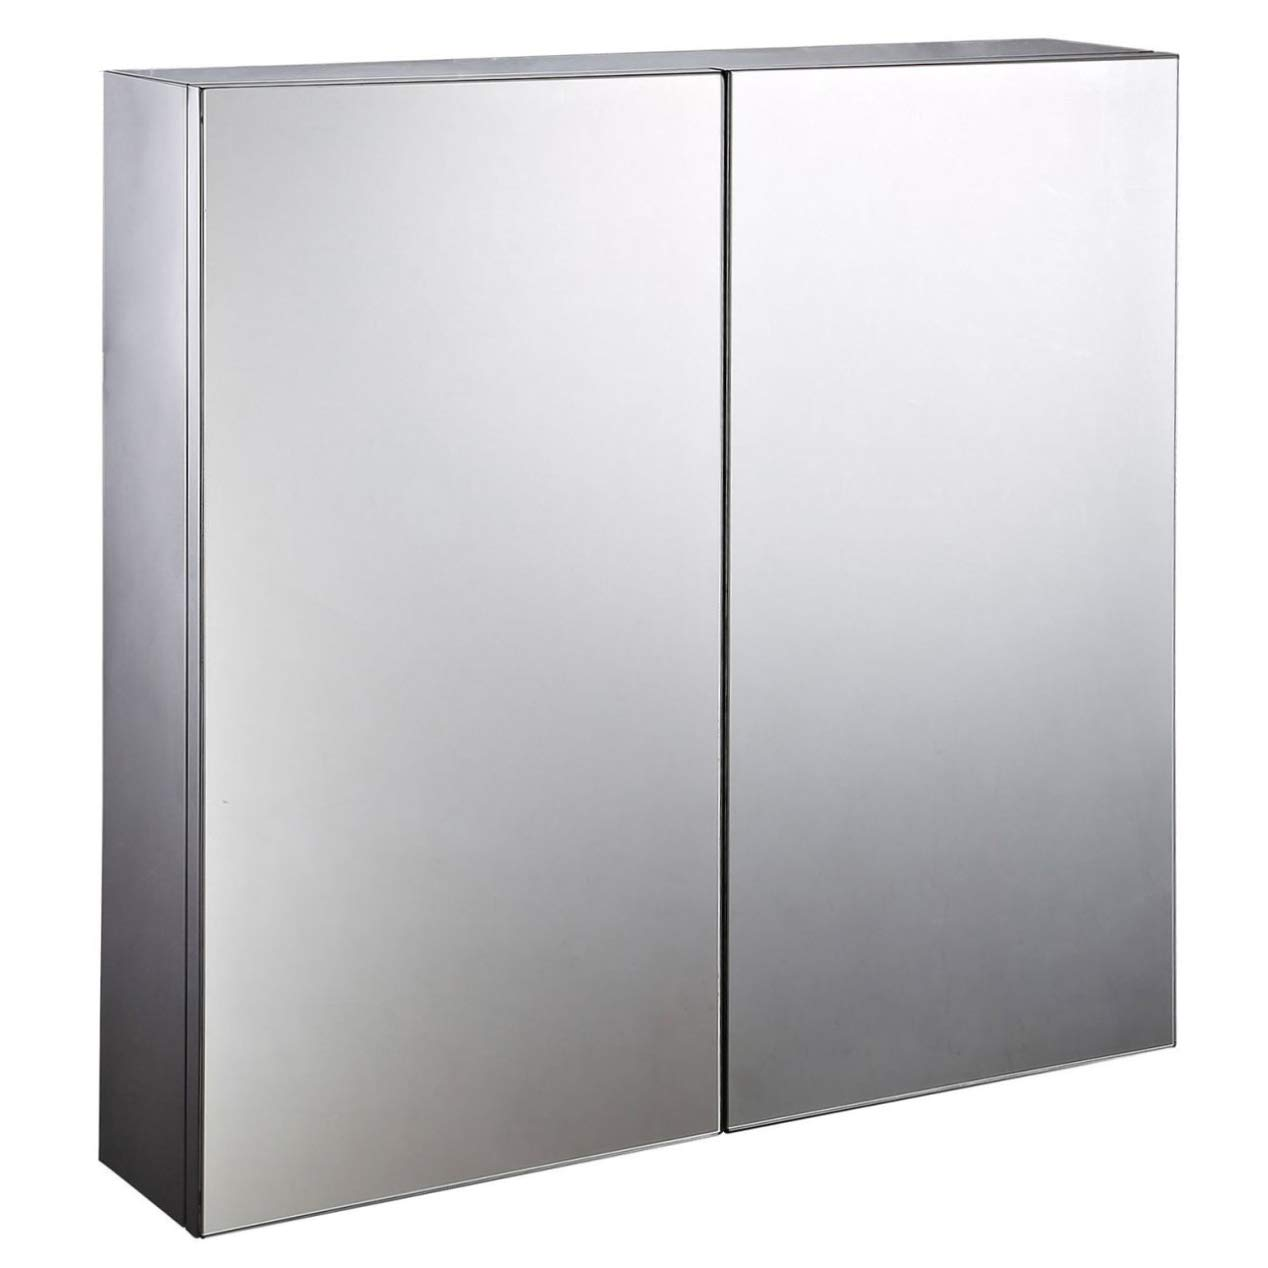 HOMCOM Stainless Steel Wall mounted Bathroom Mirror Storage Cabinet Double Doors 600mm (W) Sold by MHSTAR